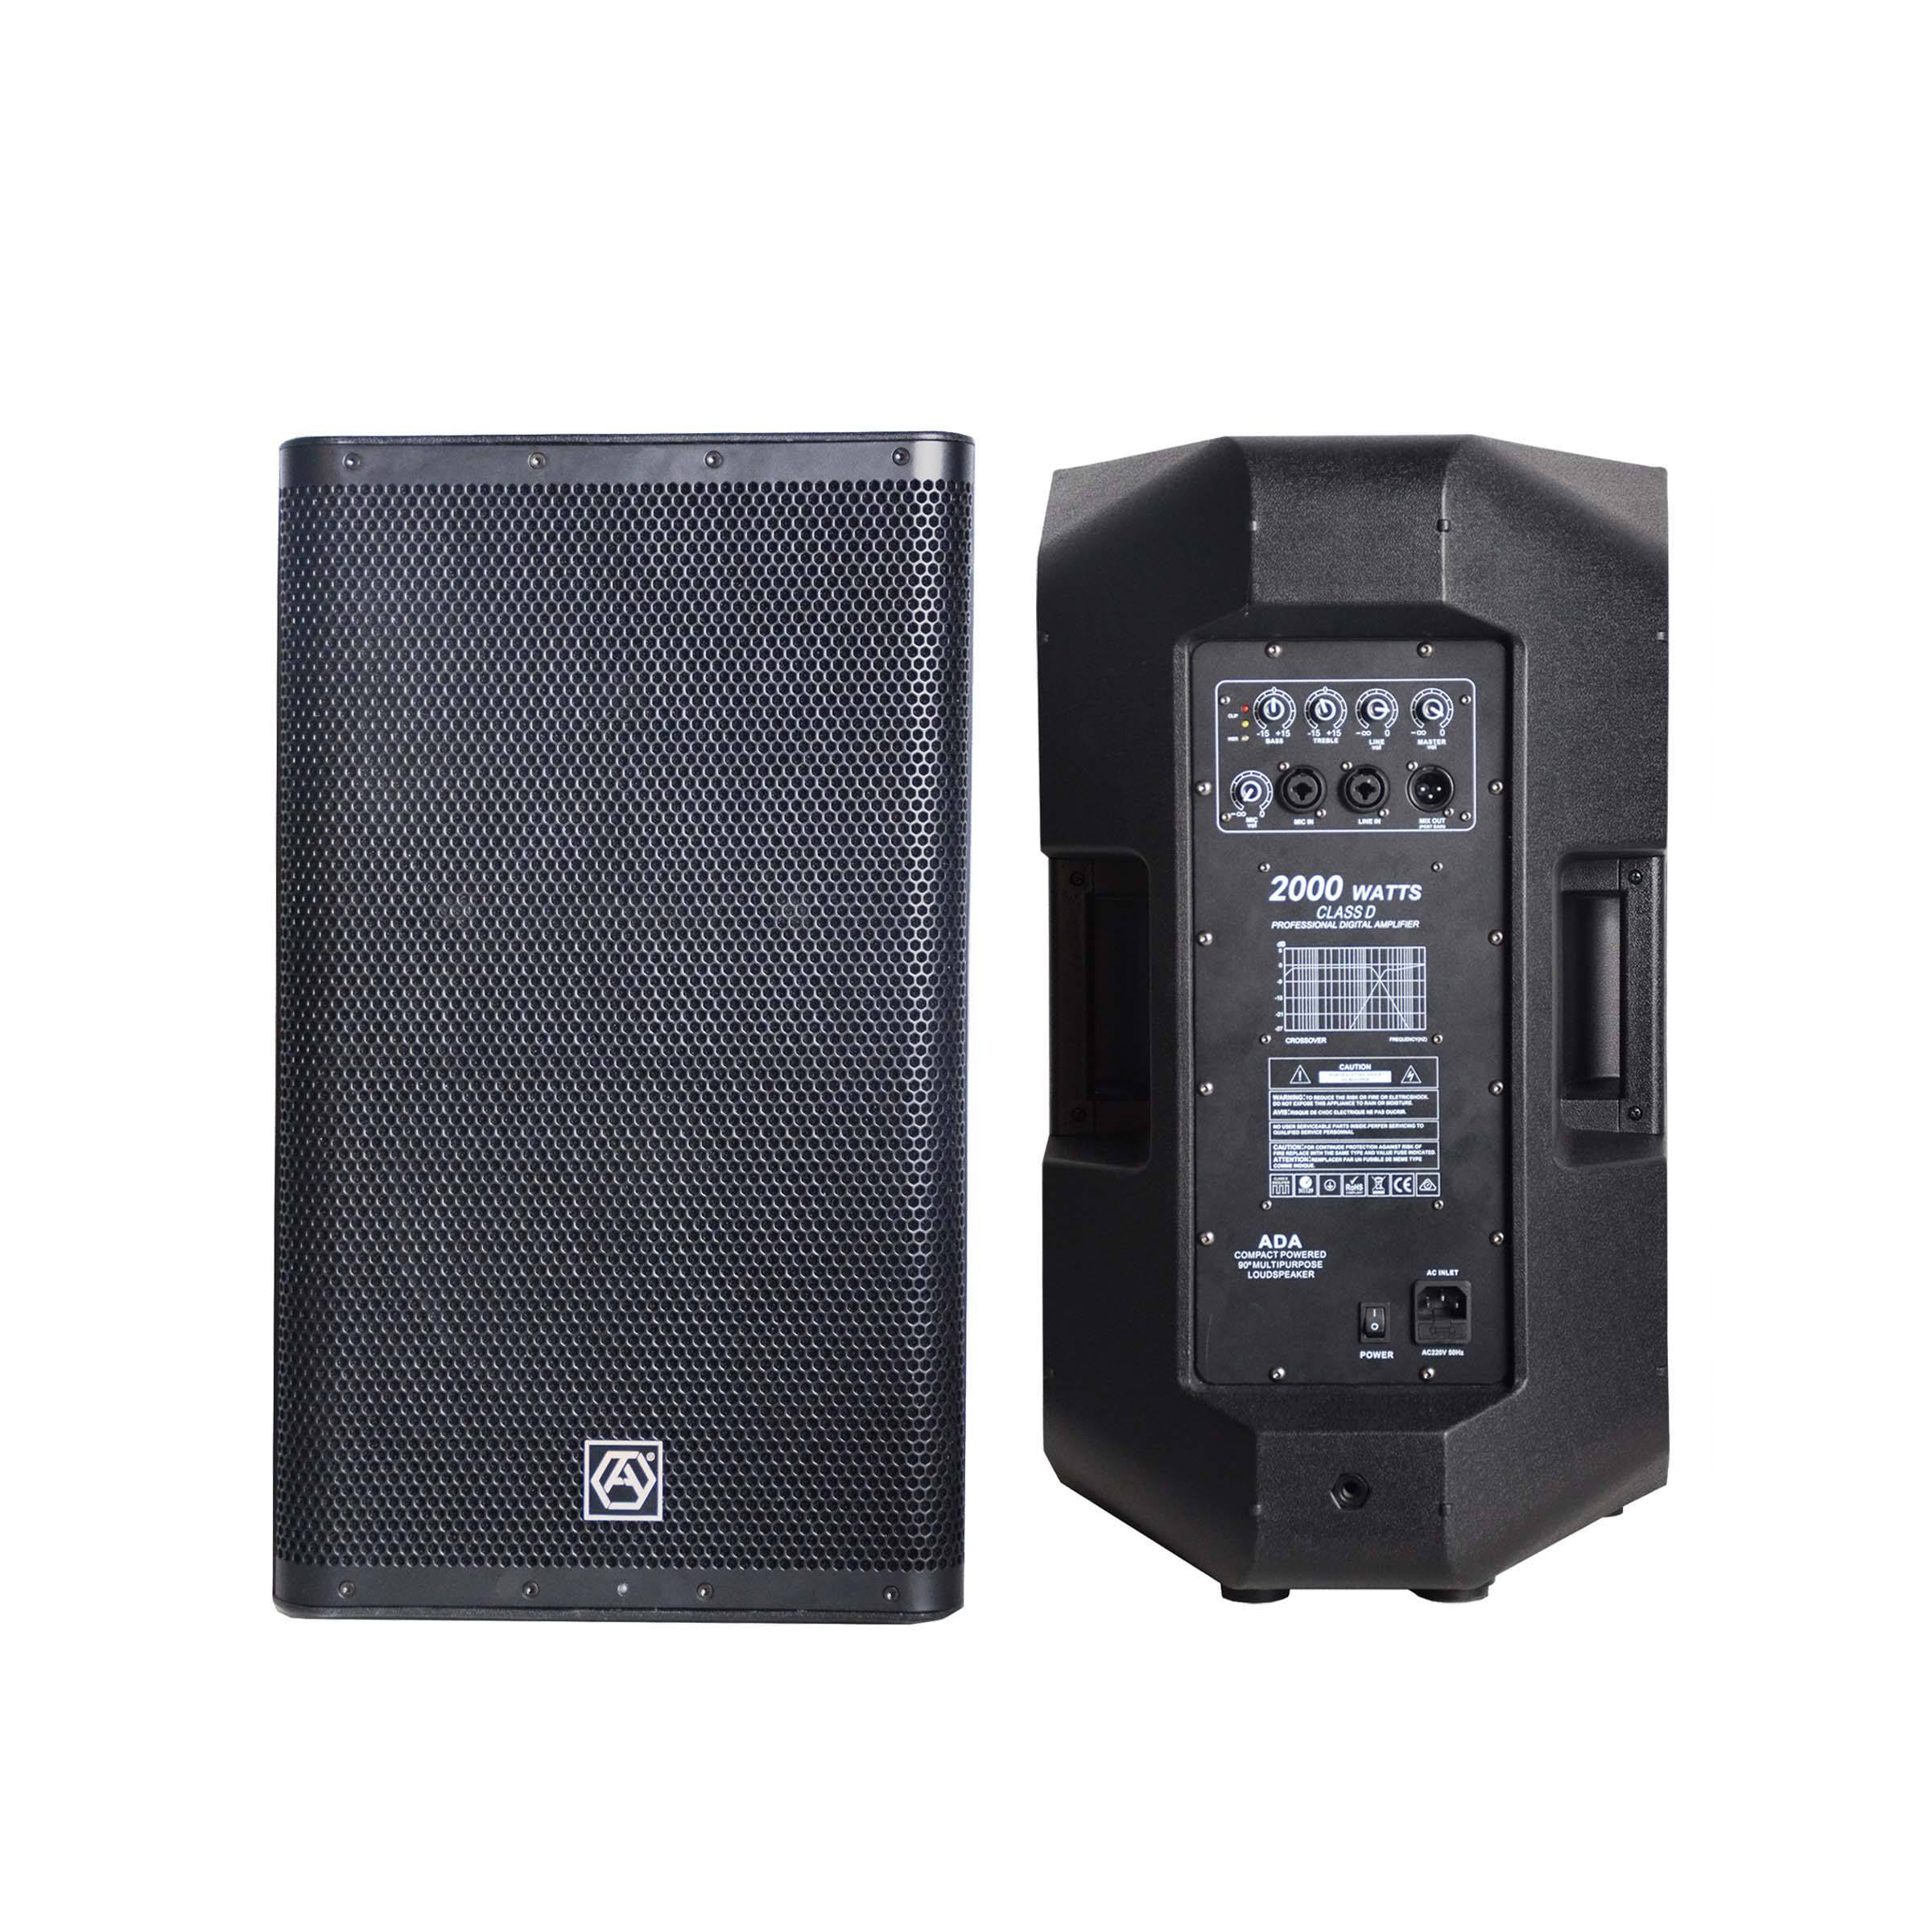 "Accuracy Pro Audio CAU15ADA New Design Professional 500W Powered Speaker 15"" Inch Active Digital Power Amplifier Speaker System"